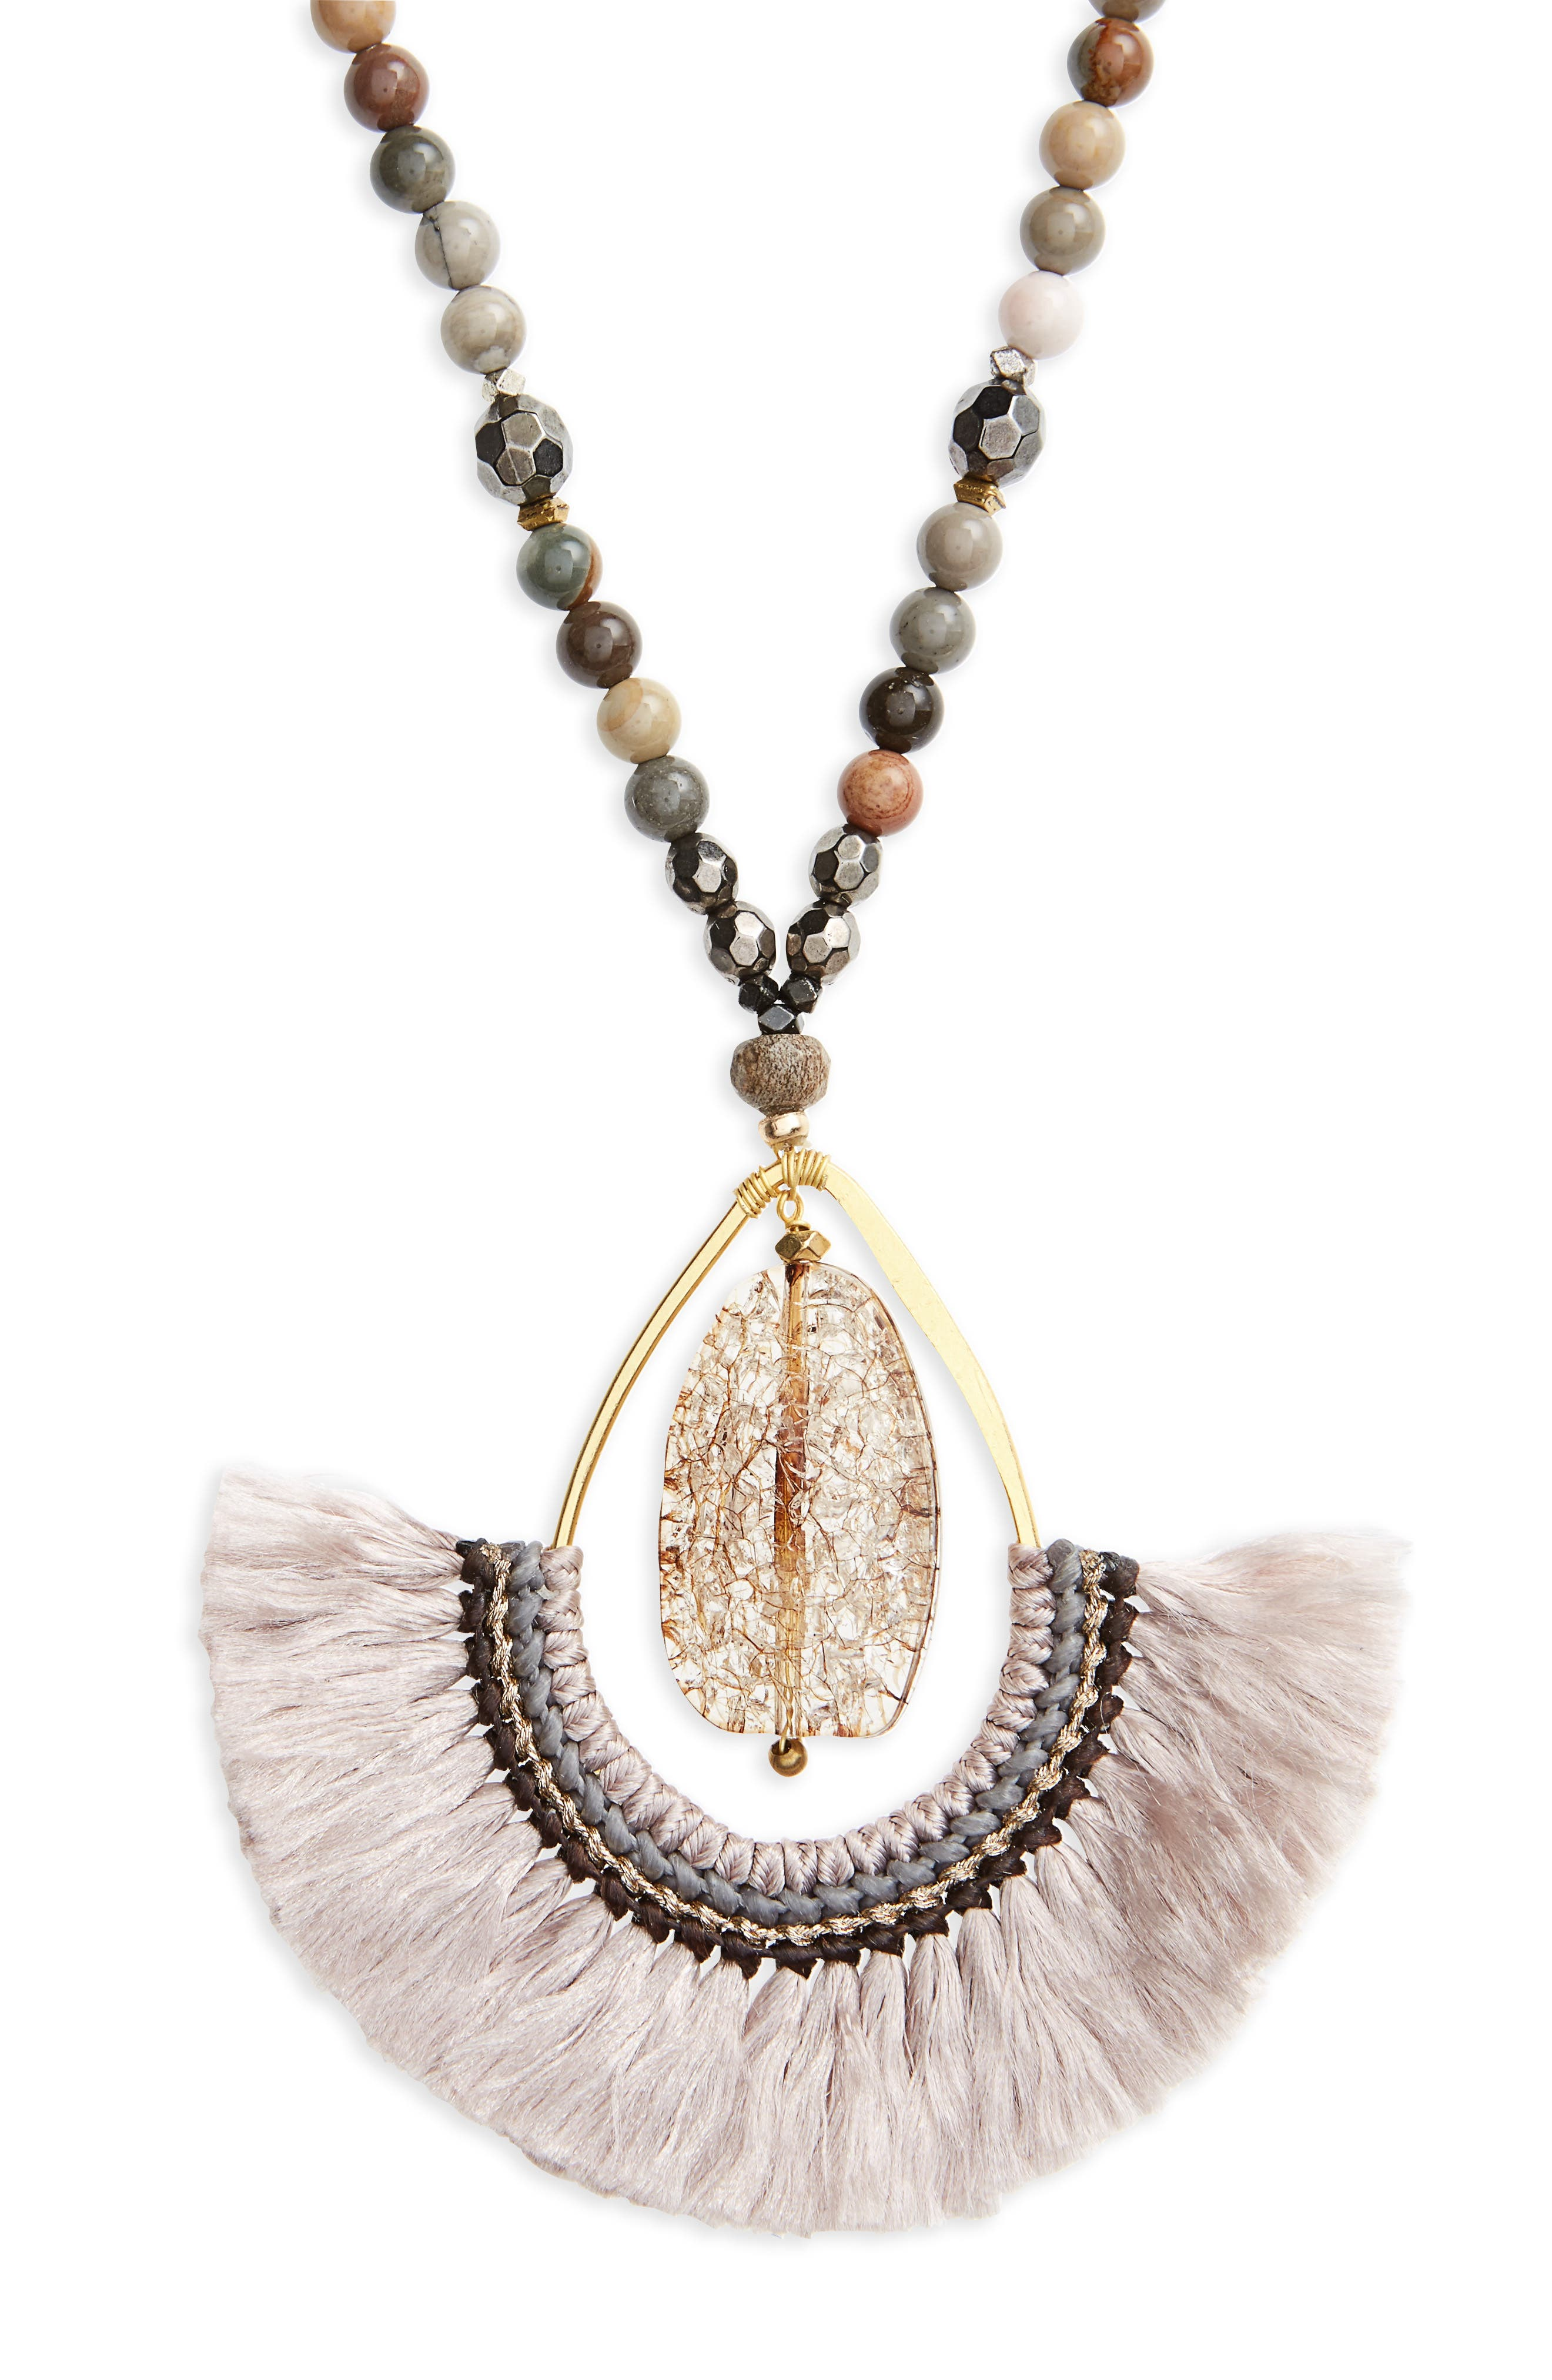 Fringed Agate Teardrop Pendant Necklace,                             Alternate thumbnail 2, color,                             250